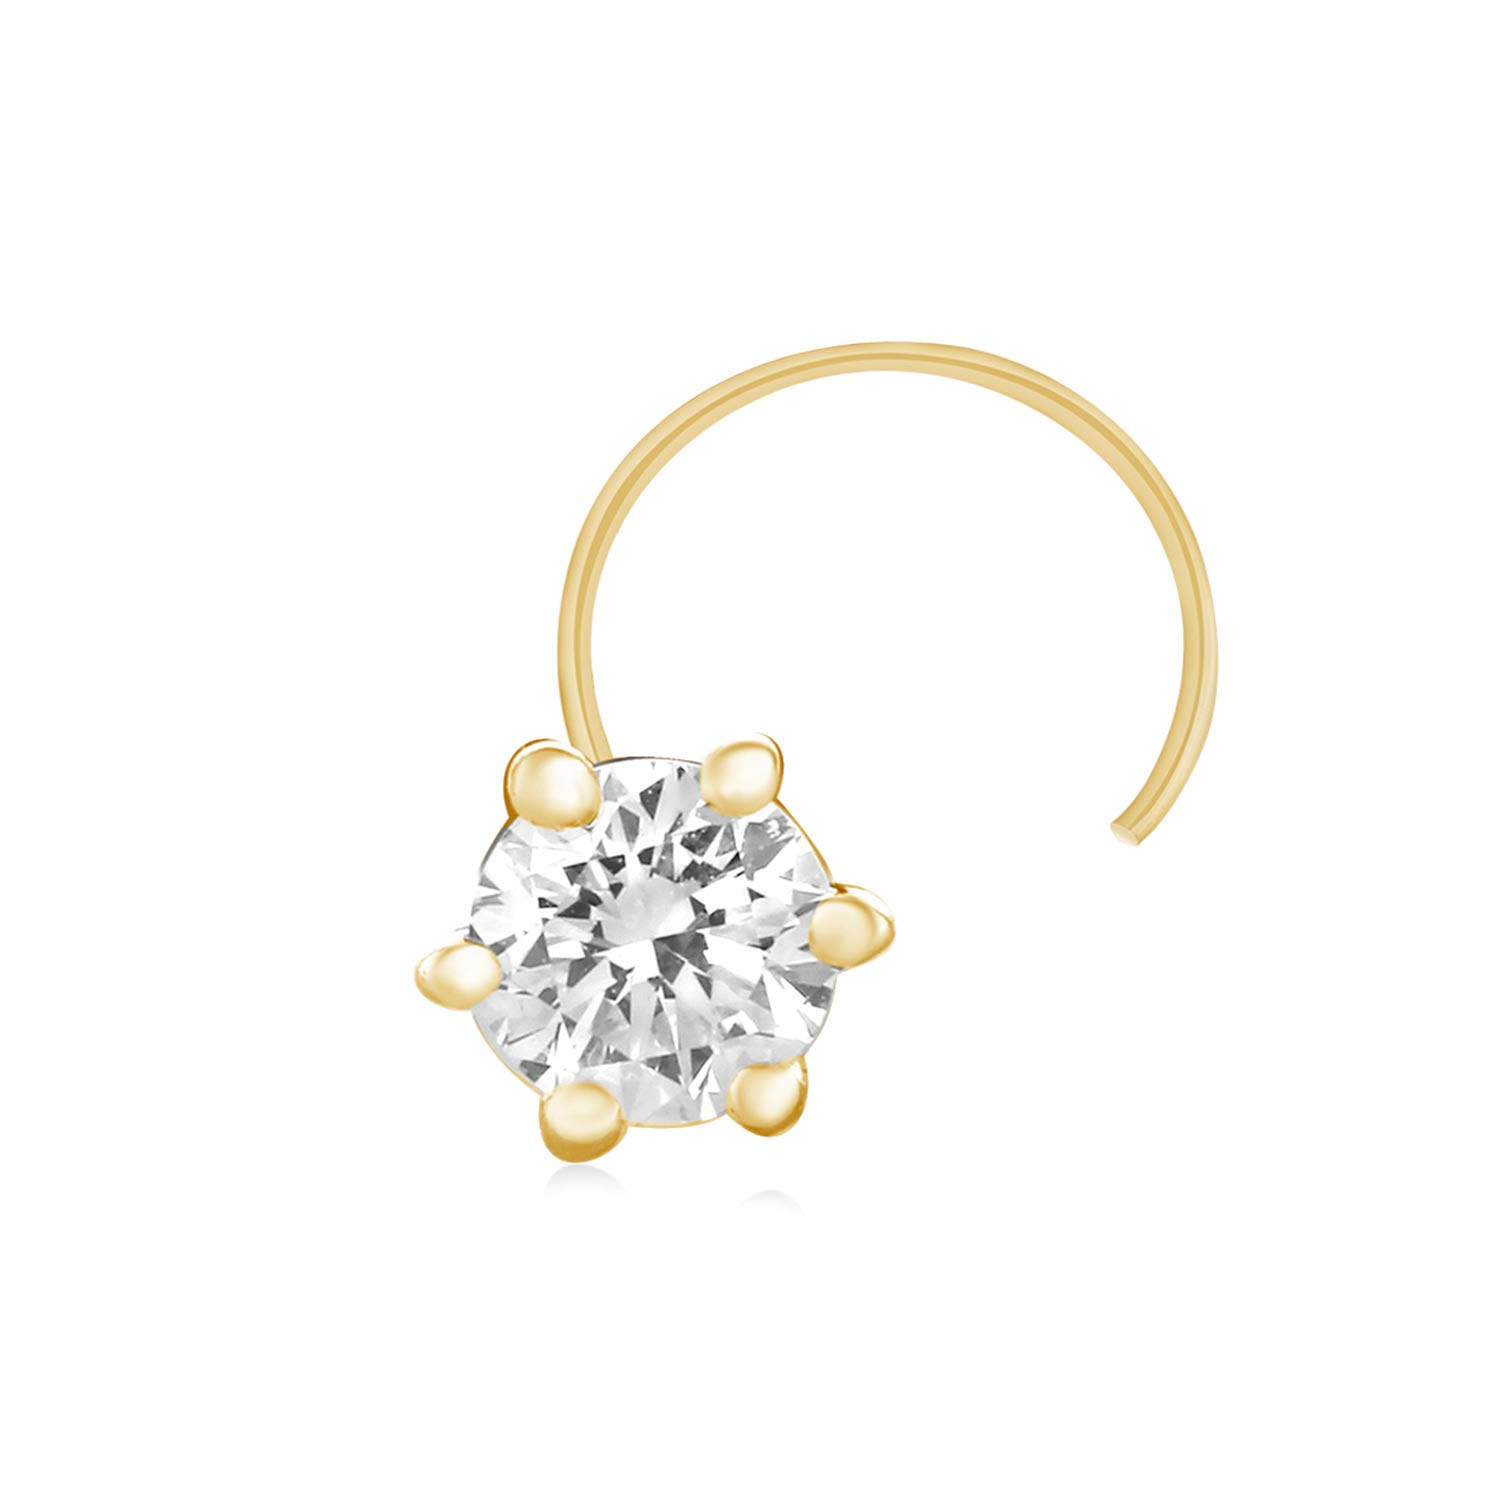 CARATS FOR YOU Brilliant Round Shape Real Natural Diamond, 10k Solid Gold Solitaire Nose Ring Stud Pin for women